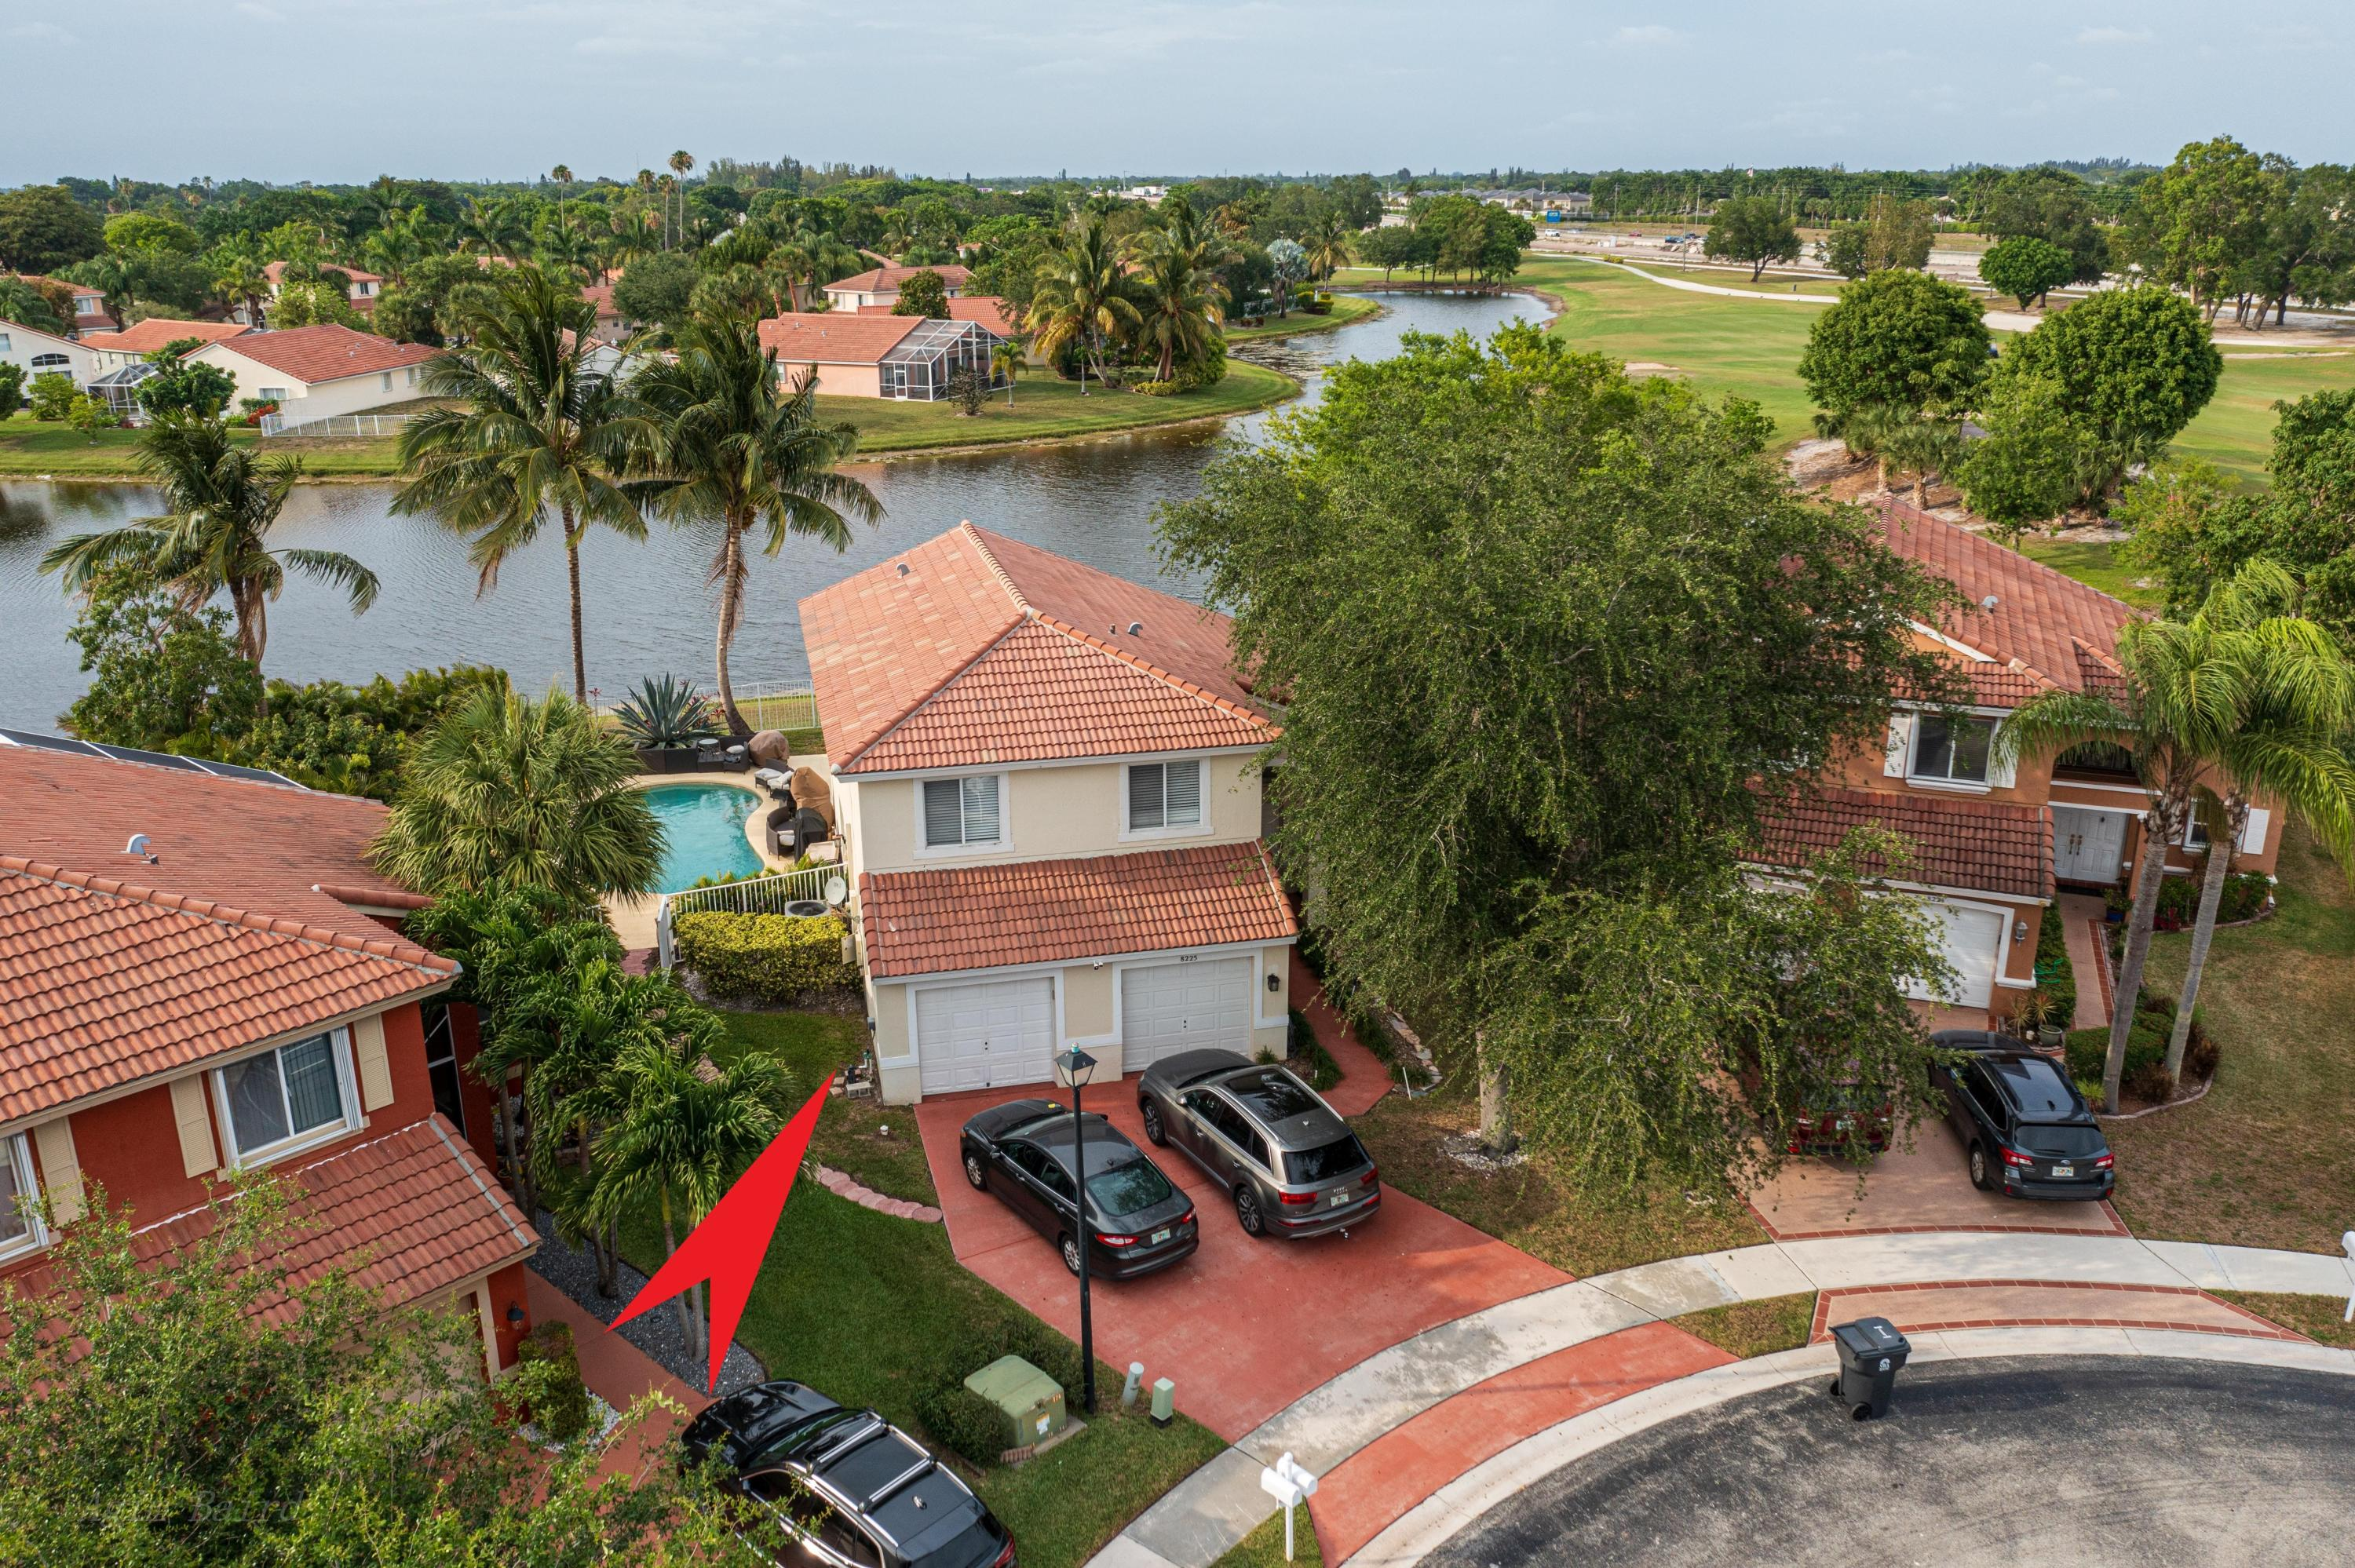 Home for sale in Lacuna - Atlantic National At Lacuna - The Greens Lake Worth Florida